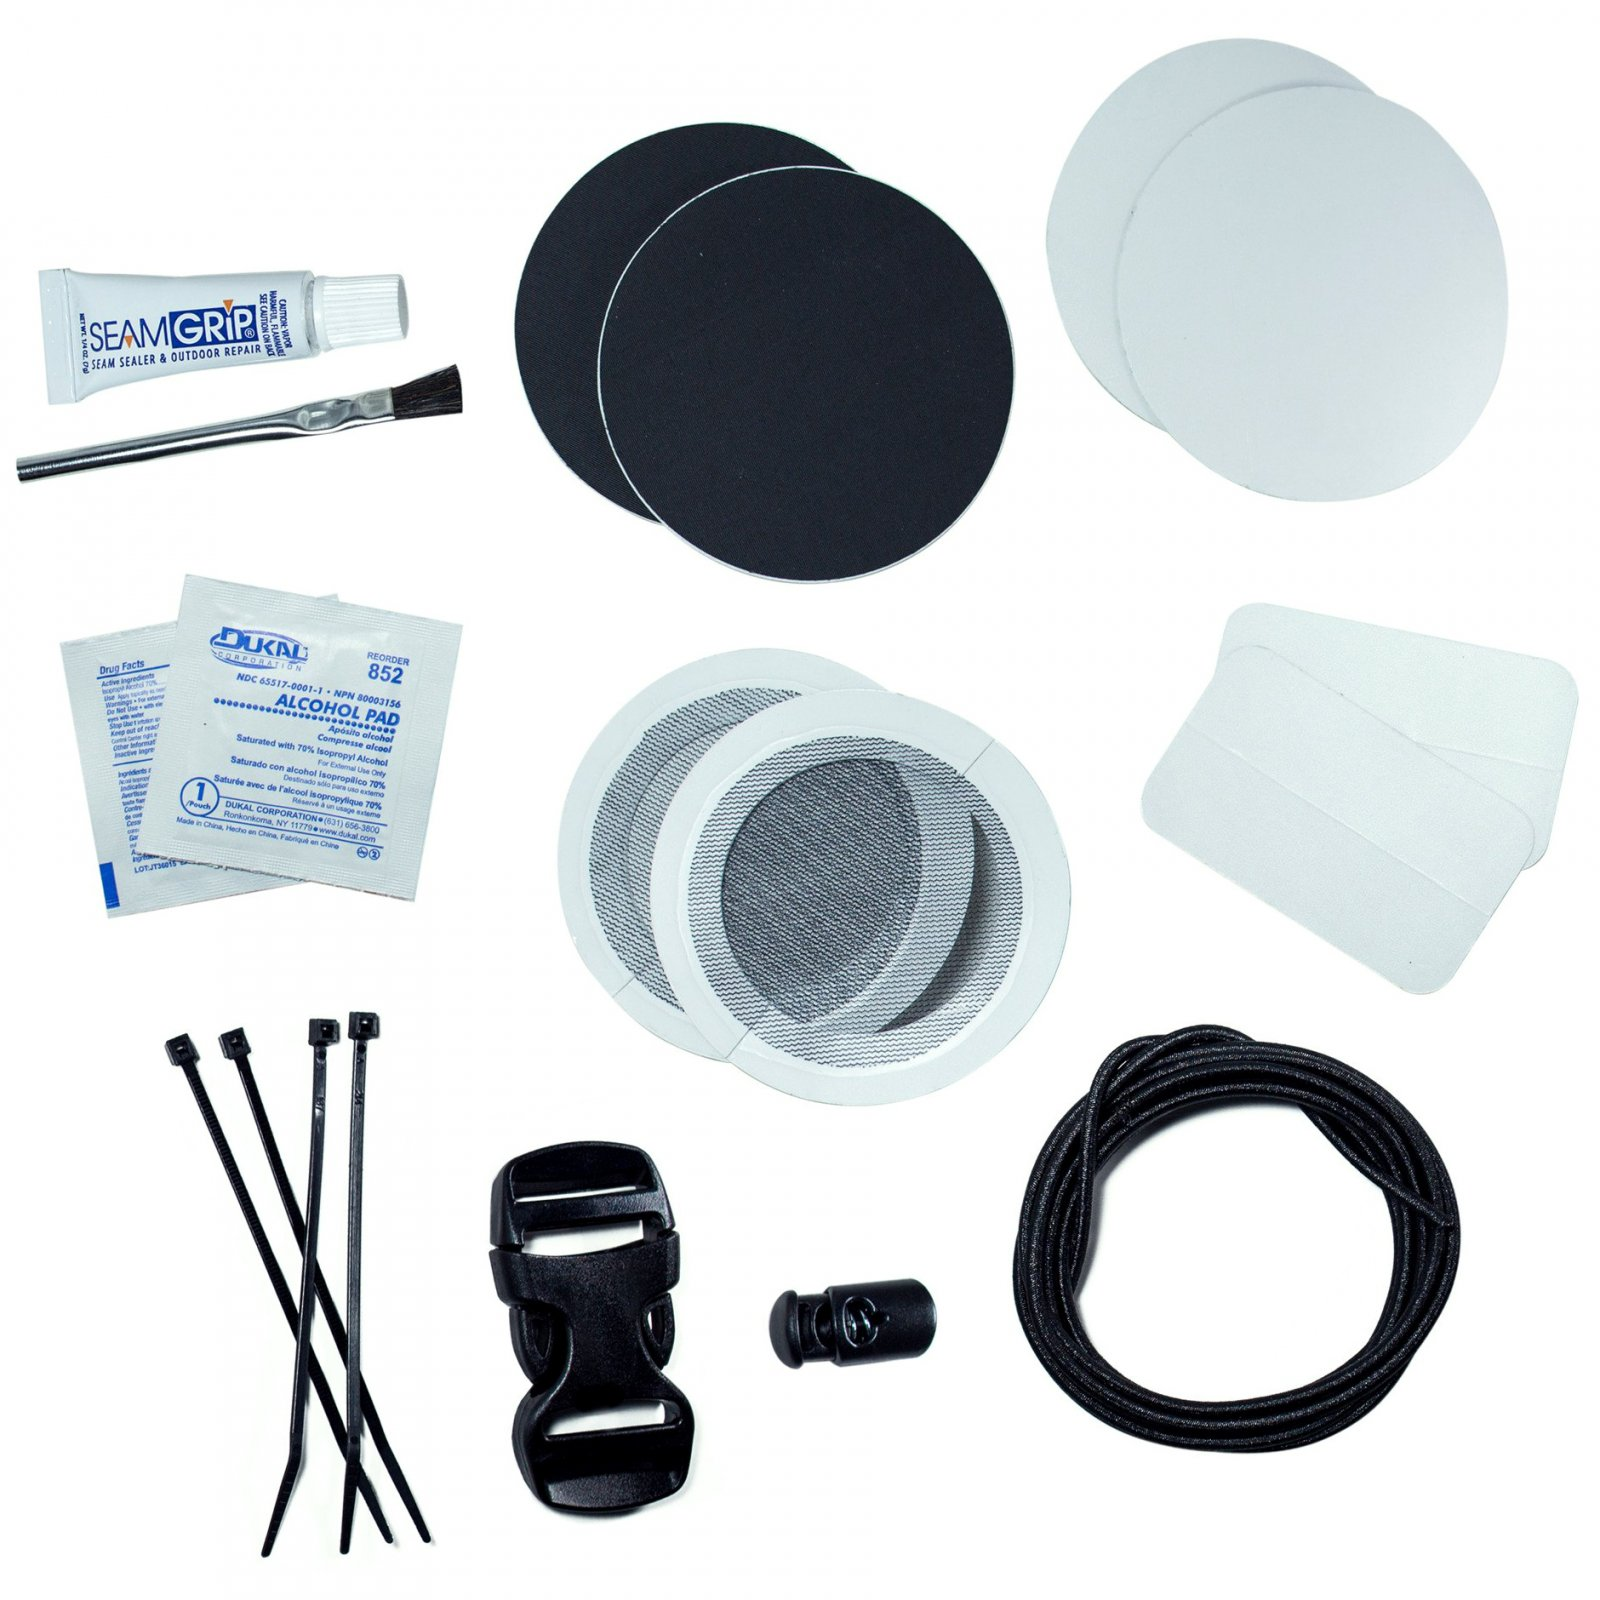 Gear Aid Camp Kit for Gear Repair Essential Supplies